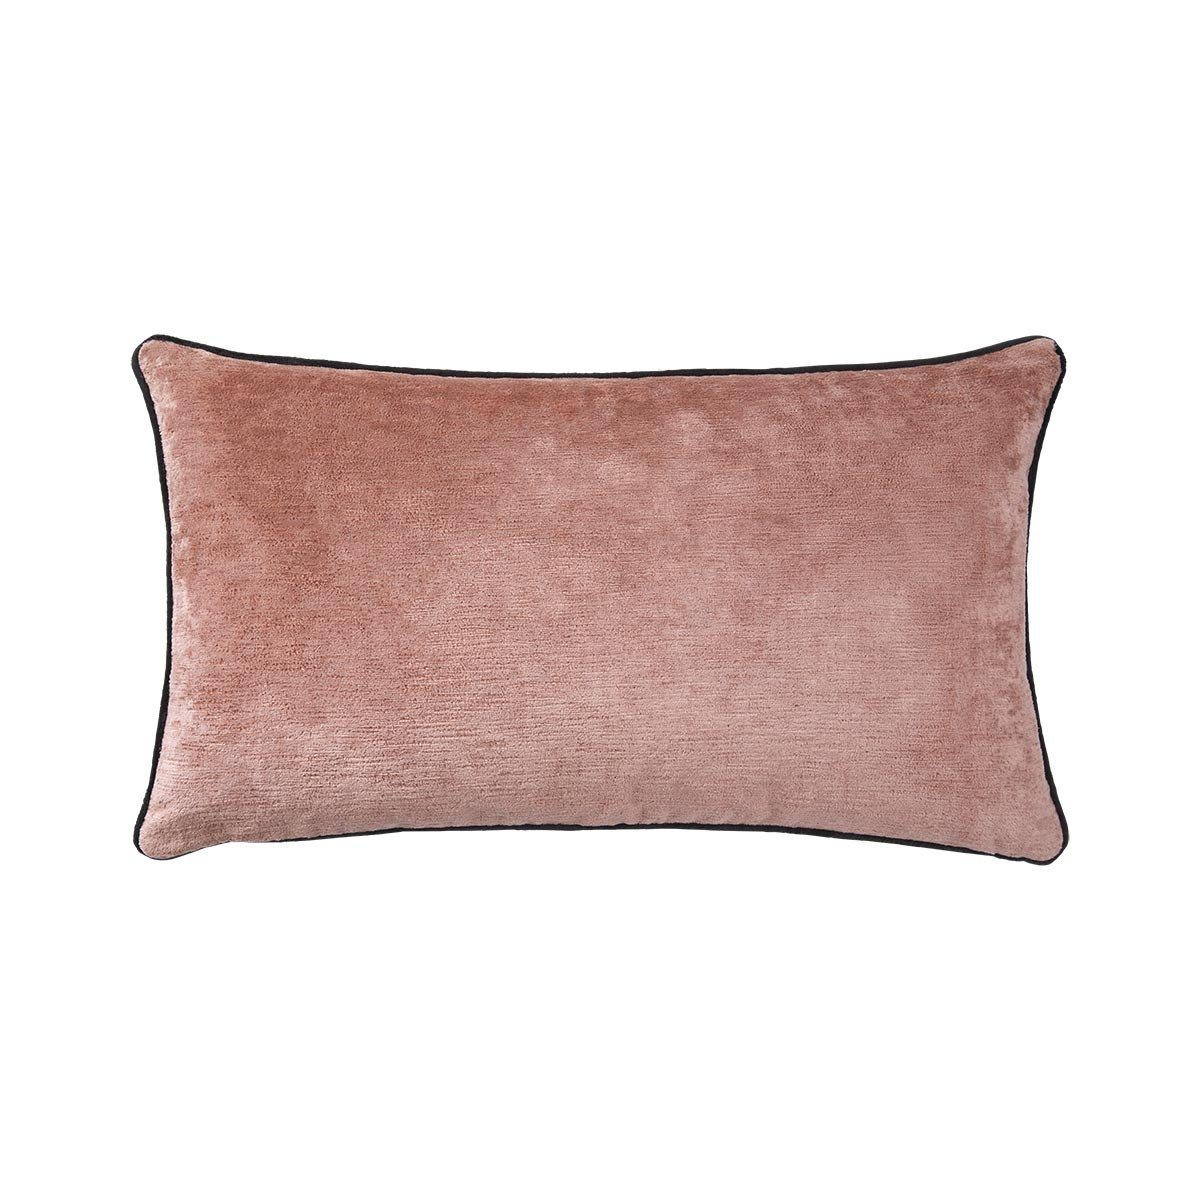 Boromee Cedre Lumbar Pillow by Iosis | Fig Linens and Home